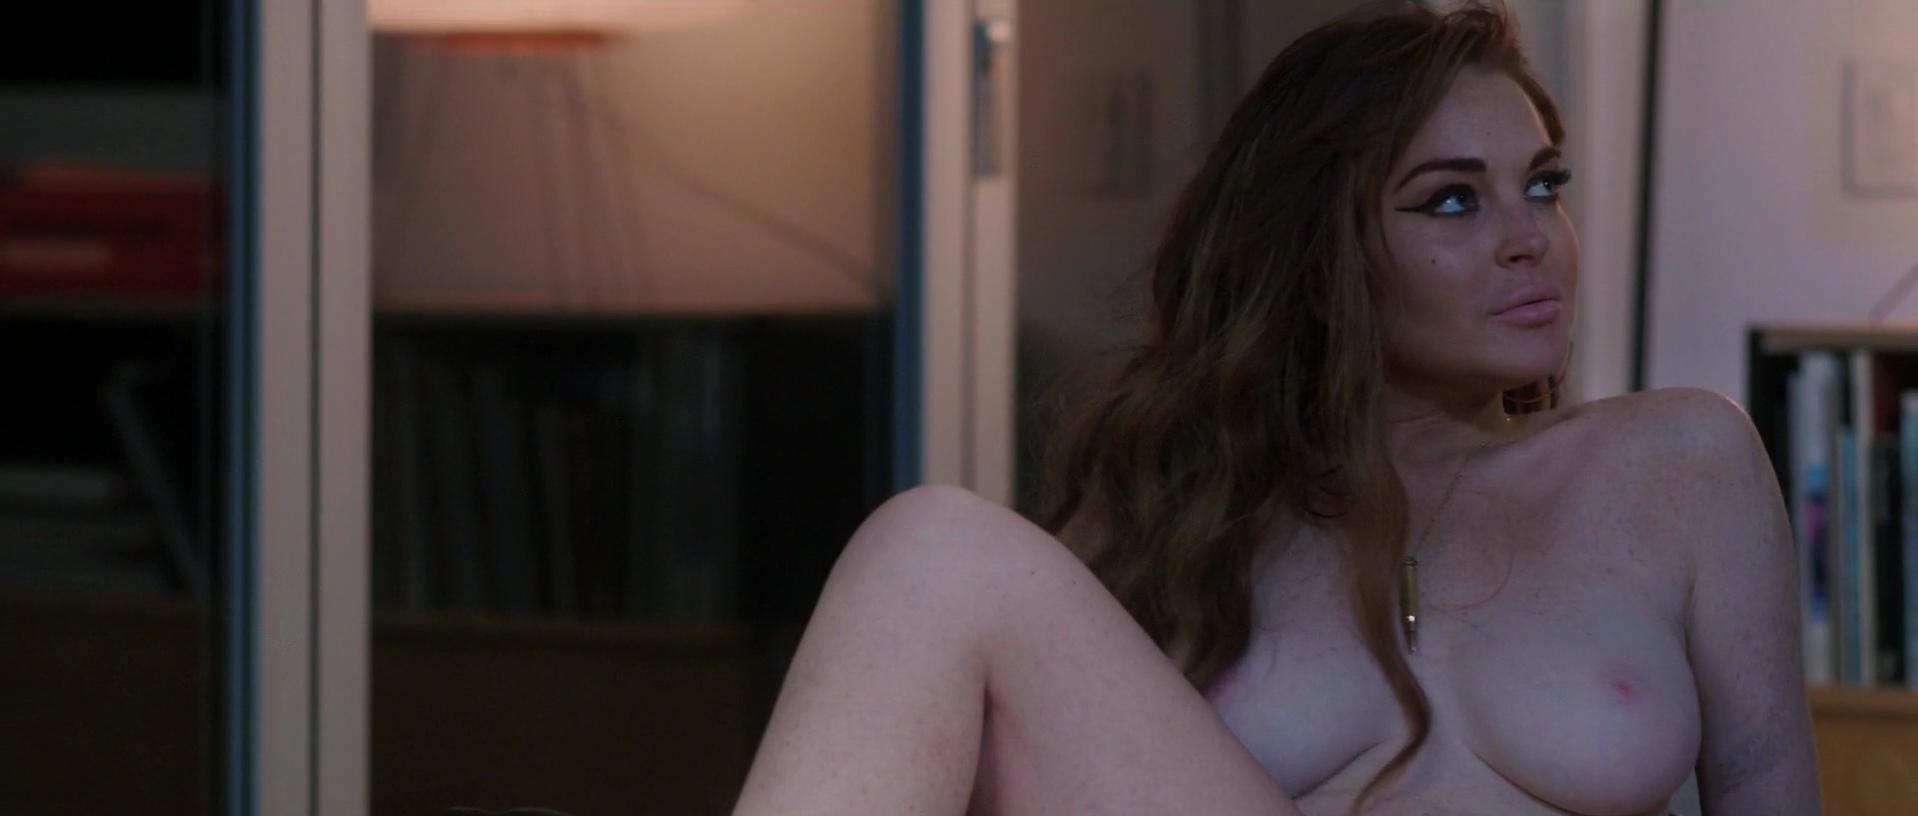 Lindsay Lohan nude - The Canyons (2013) ...